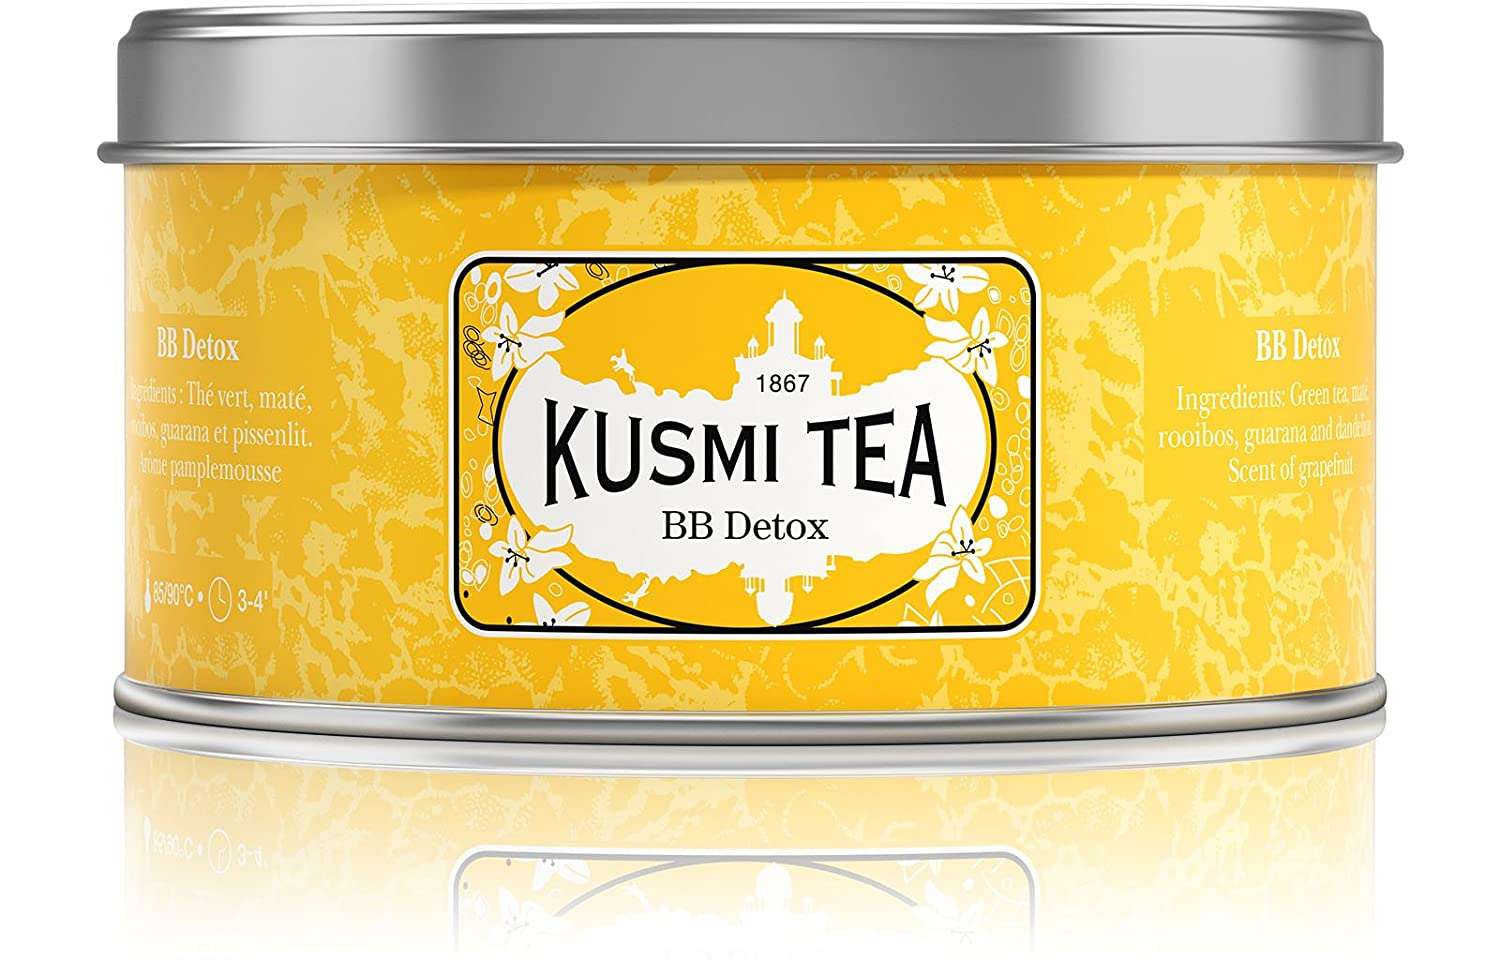 Kusmi Tea Paris - Premium Luxury Teas - BB DETOX (Yellow tin) - 125gr Tin BBDE125